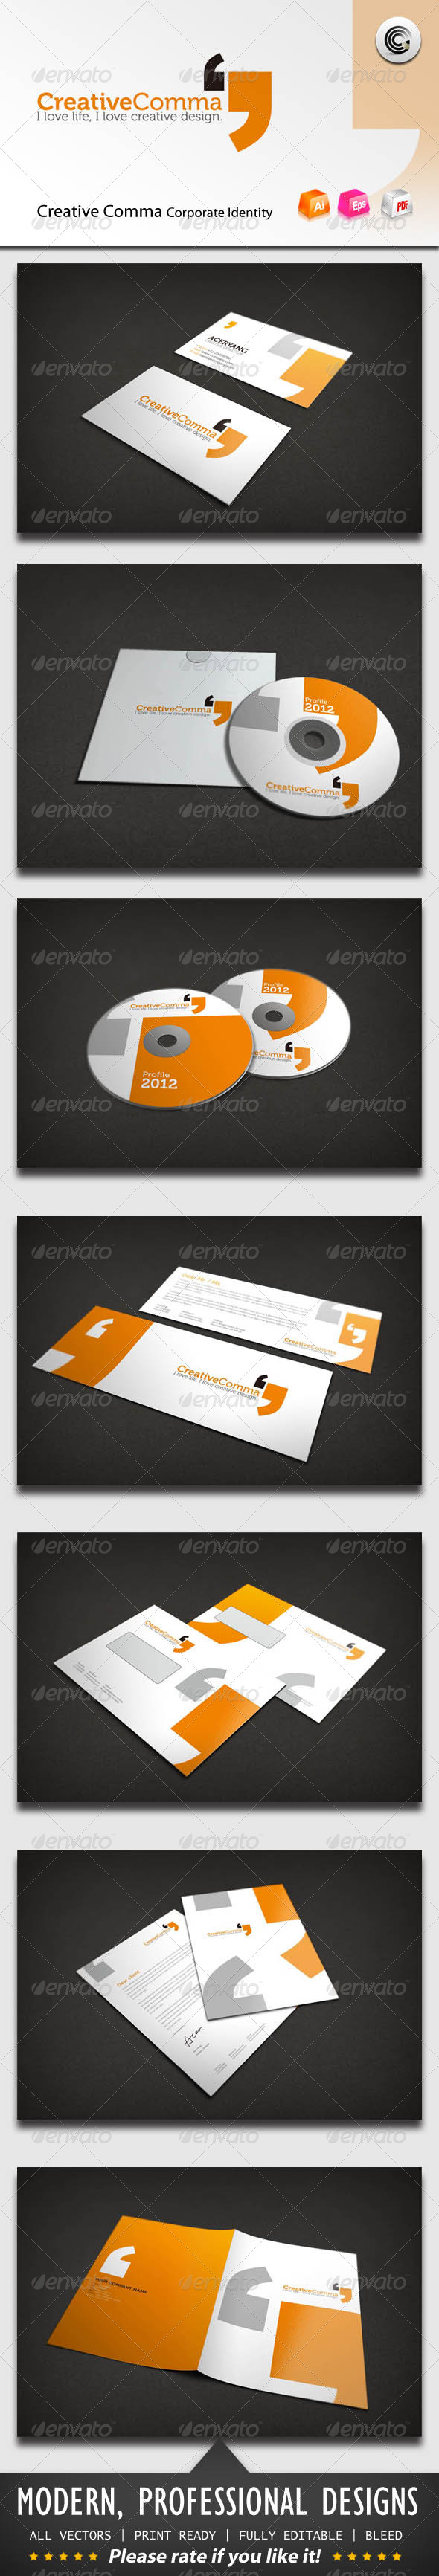 Creative Comma Corporate Identity - Stationery Print Templates